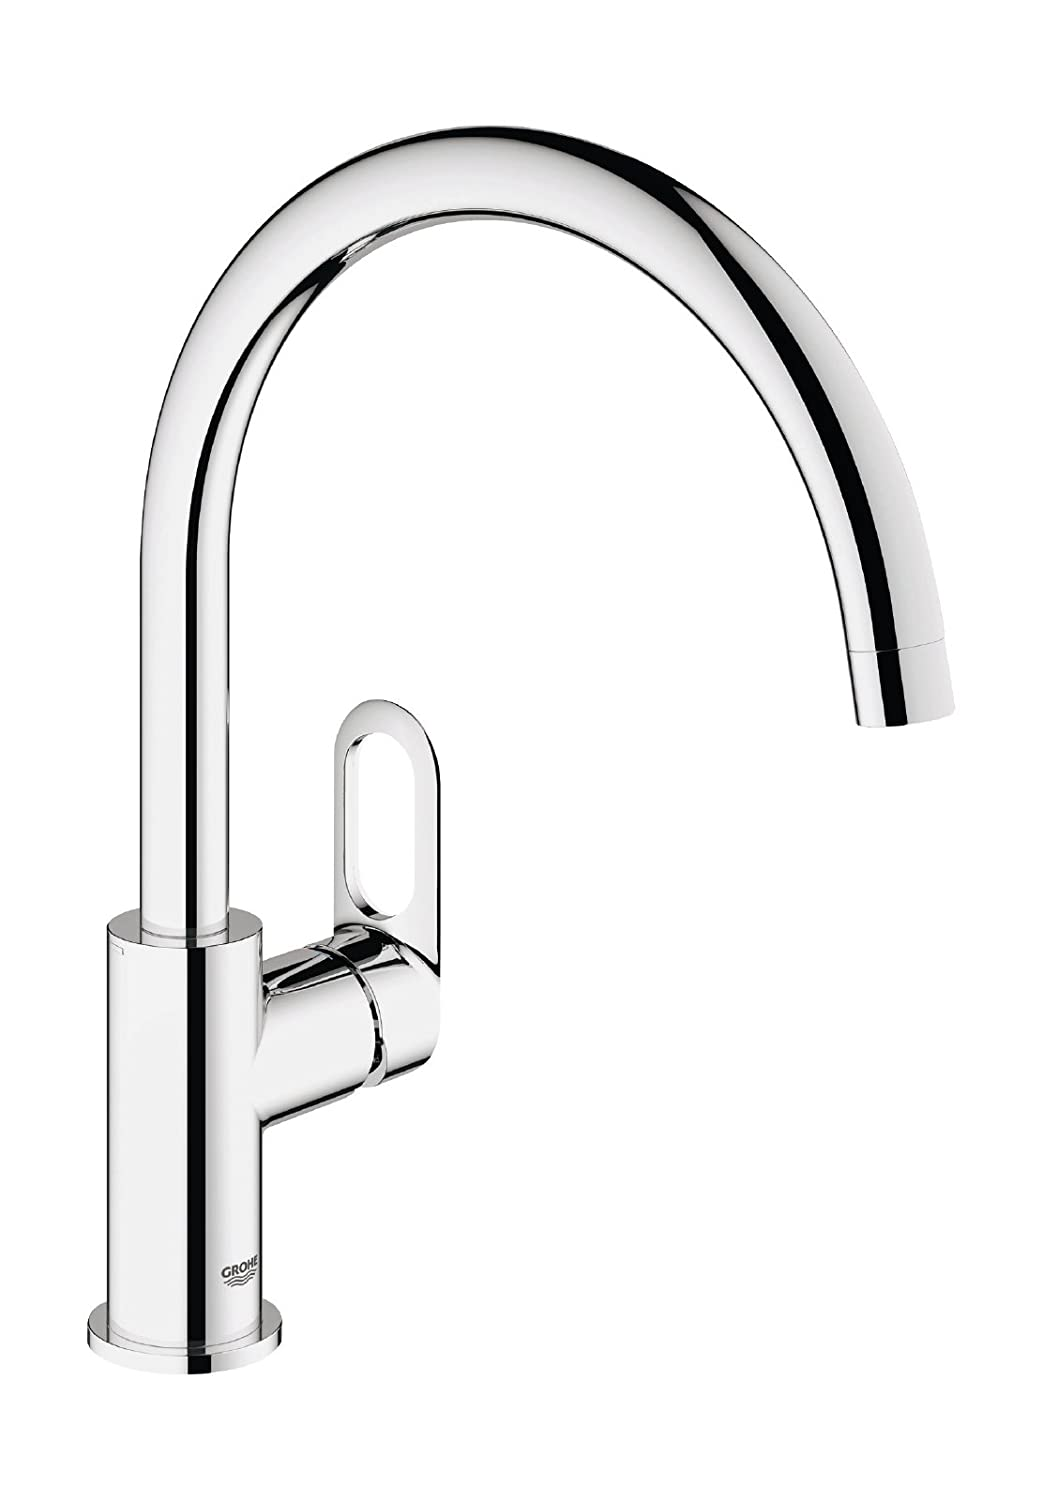 100 grohe 32 665 single handle grohe kitchen faucets repair trends and parkfield single - Grohe kitchen faucets amazon ...